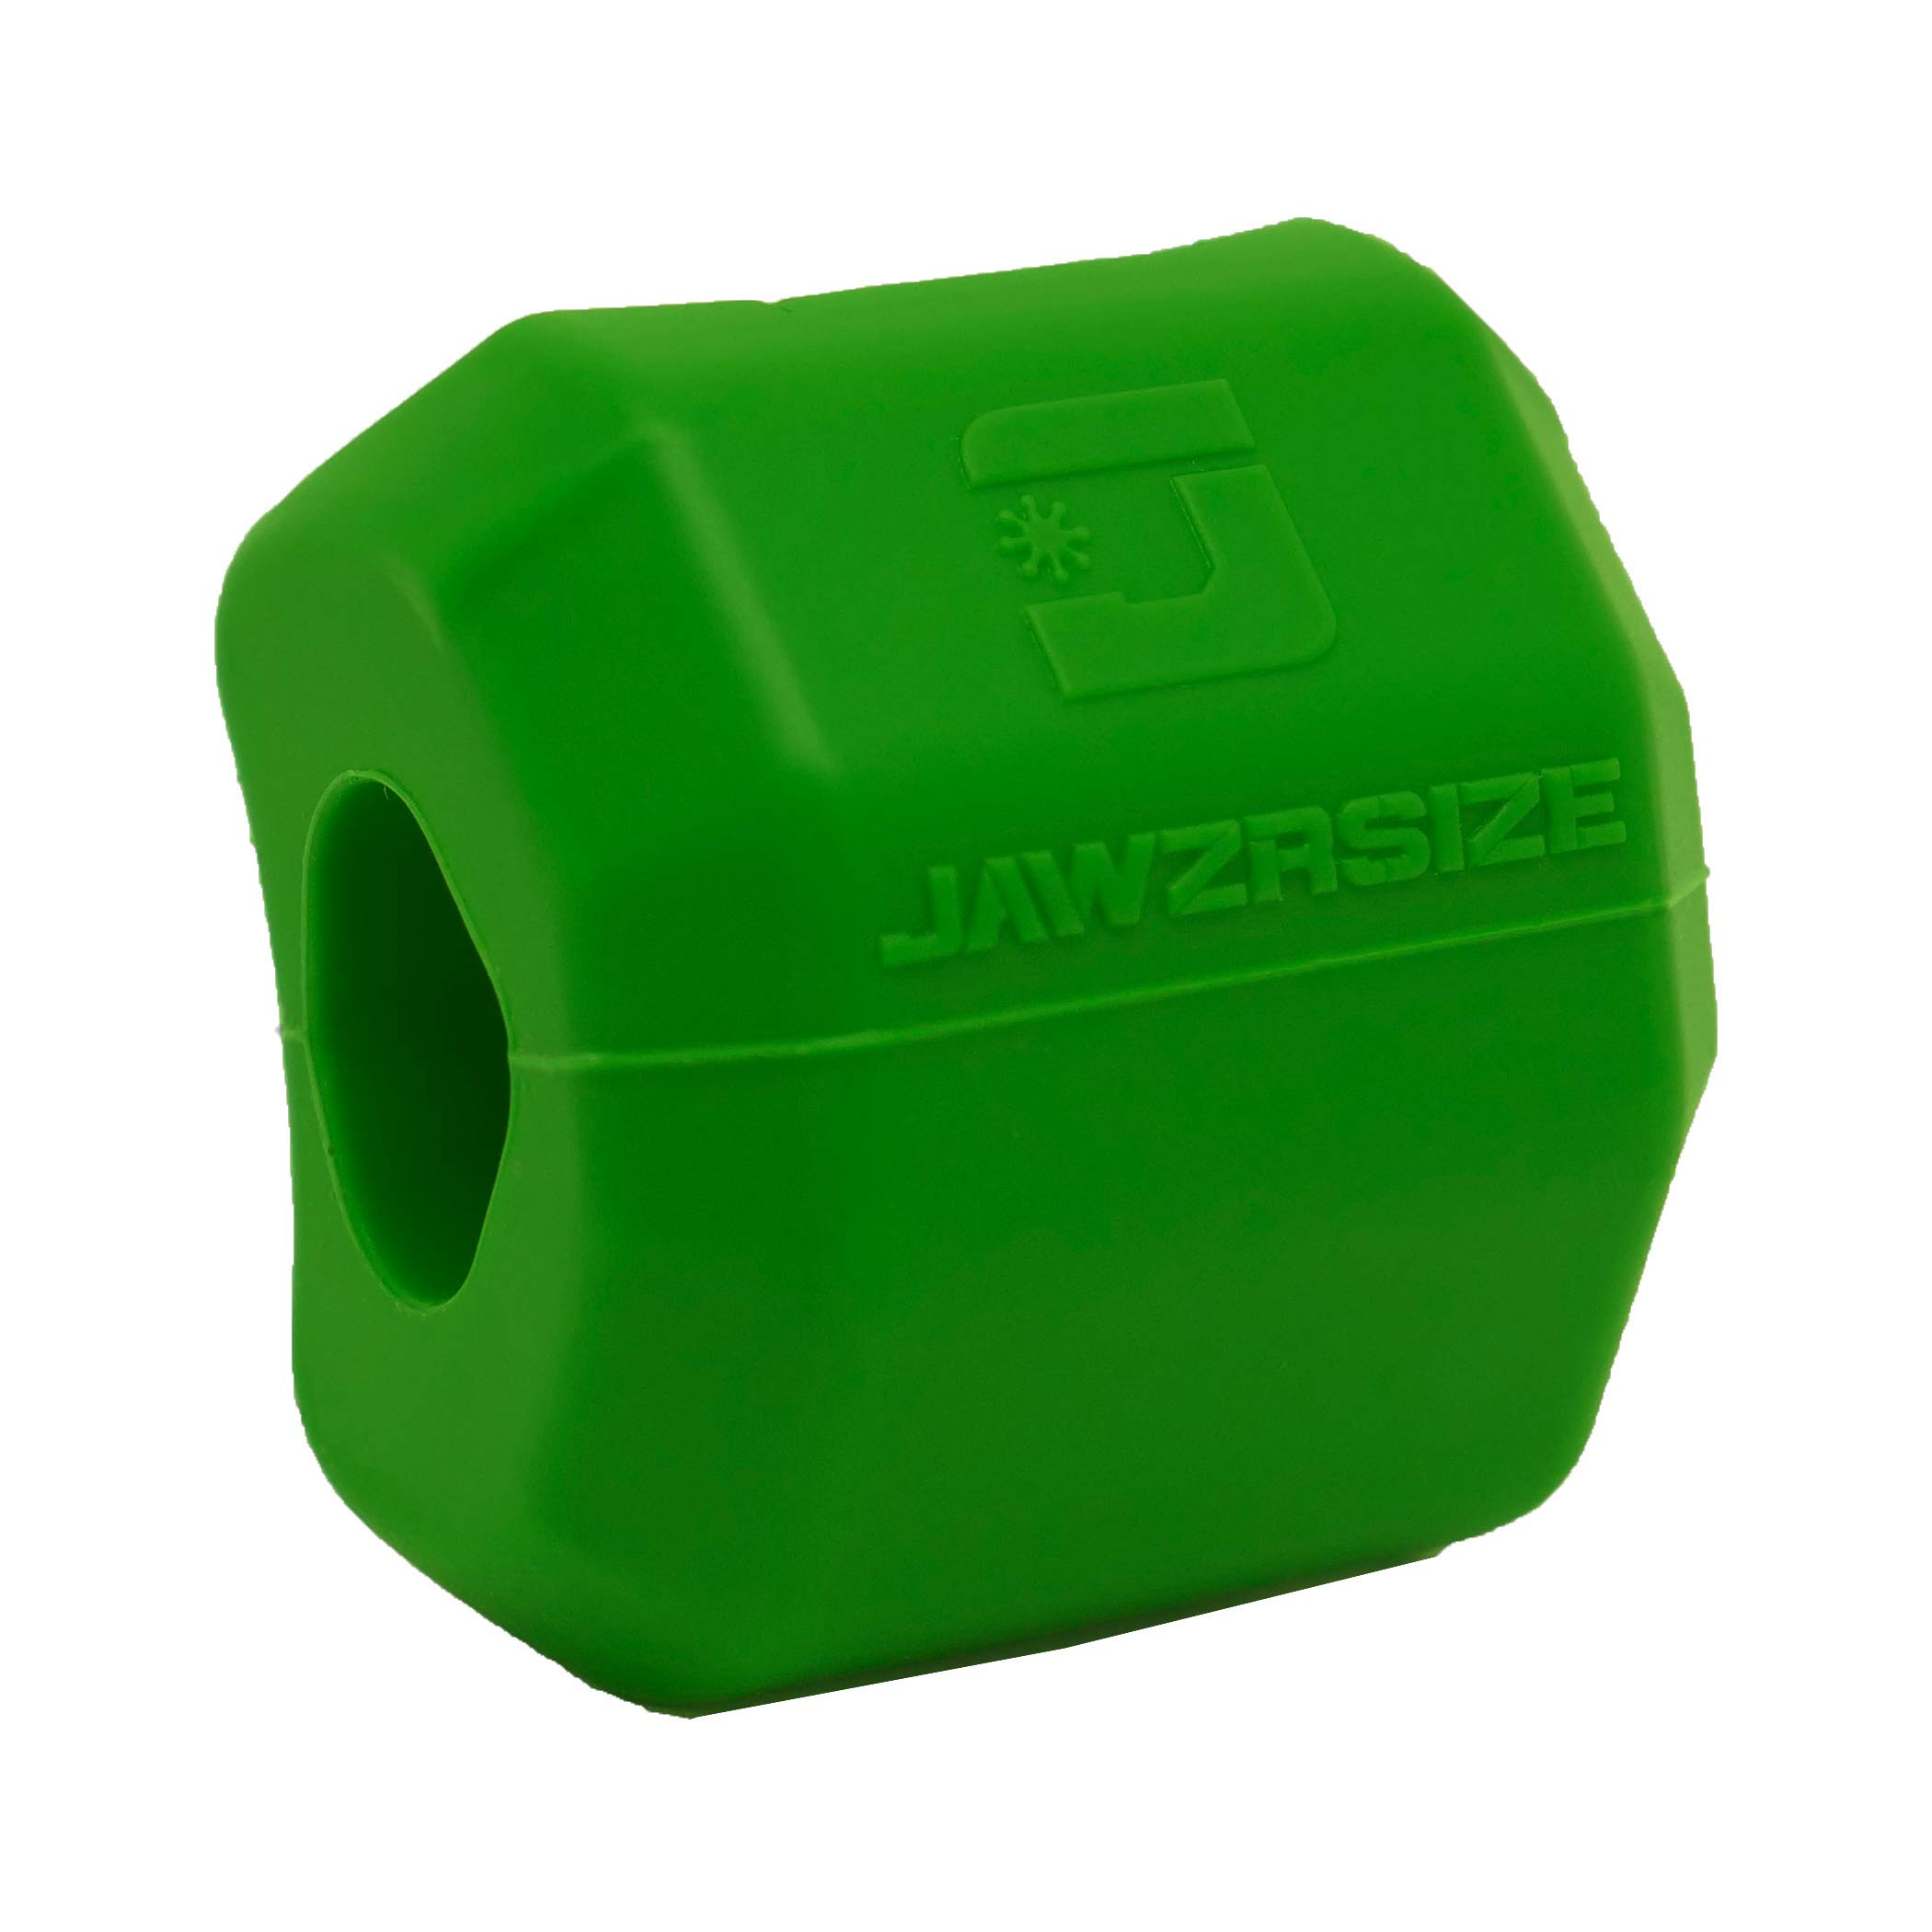 Jawzrsize Pop N Go (40lb. Resistance) - Slim, Define and Tone Your Face, Neck and Jaw (Green)